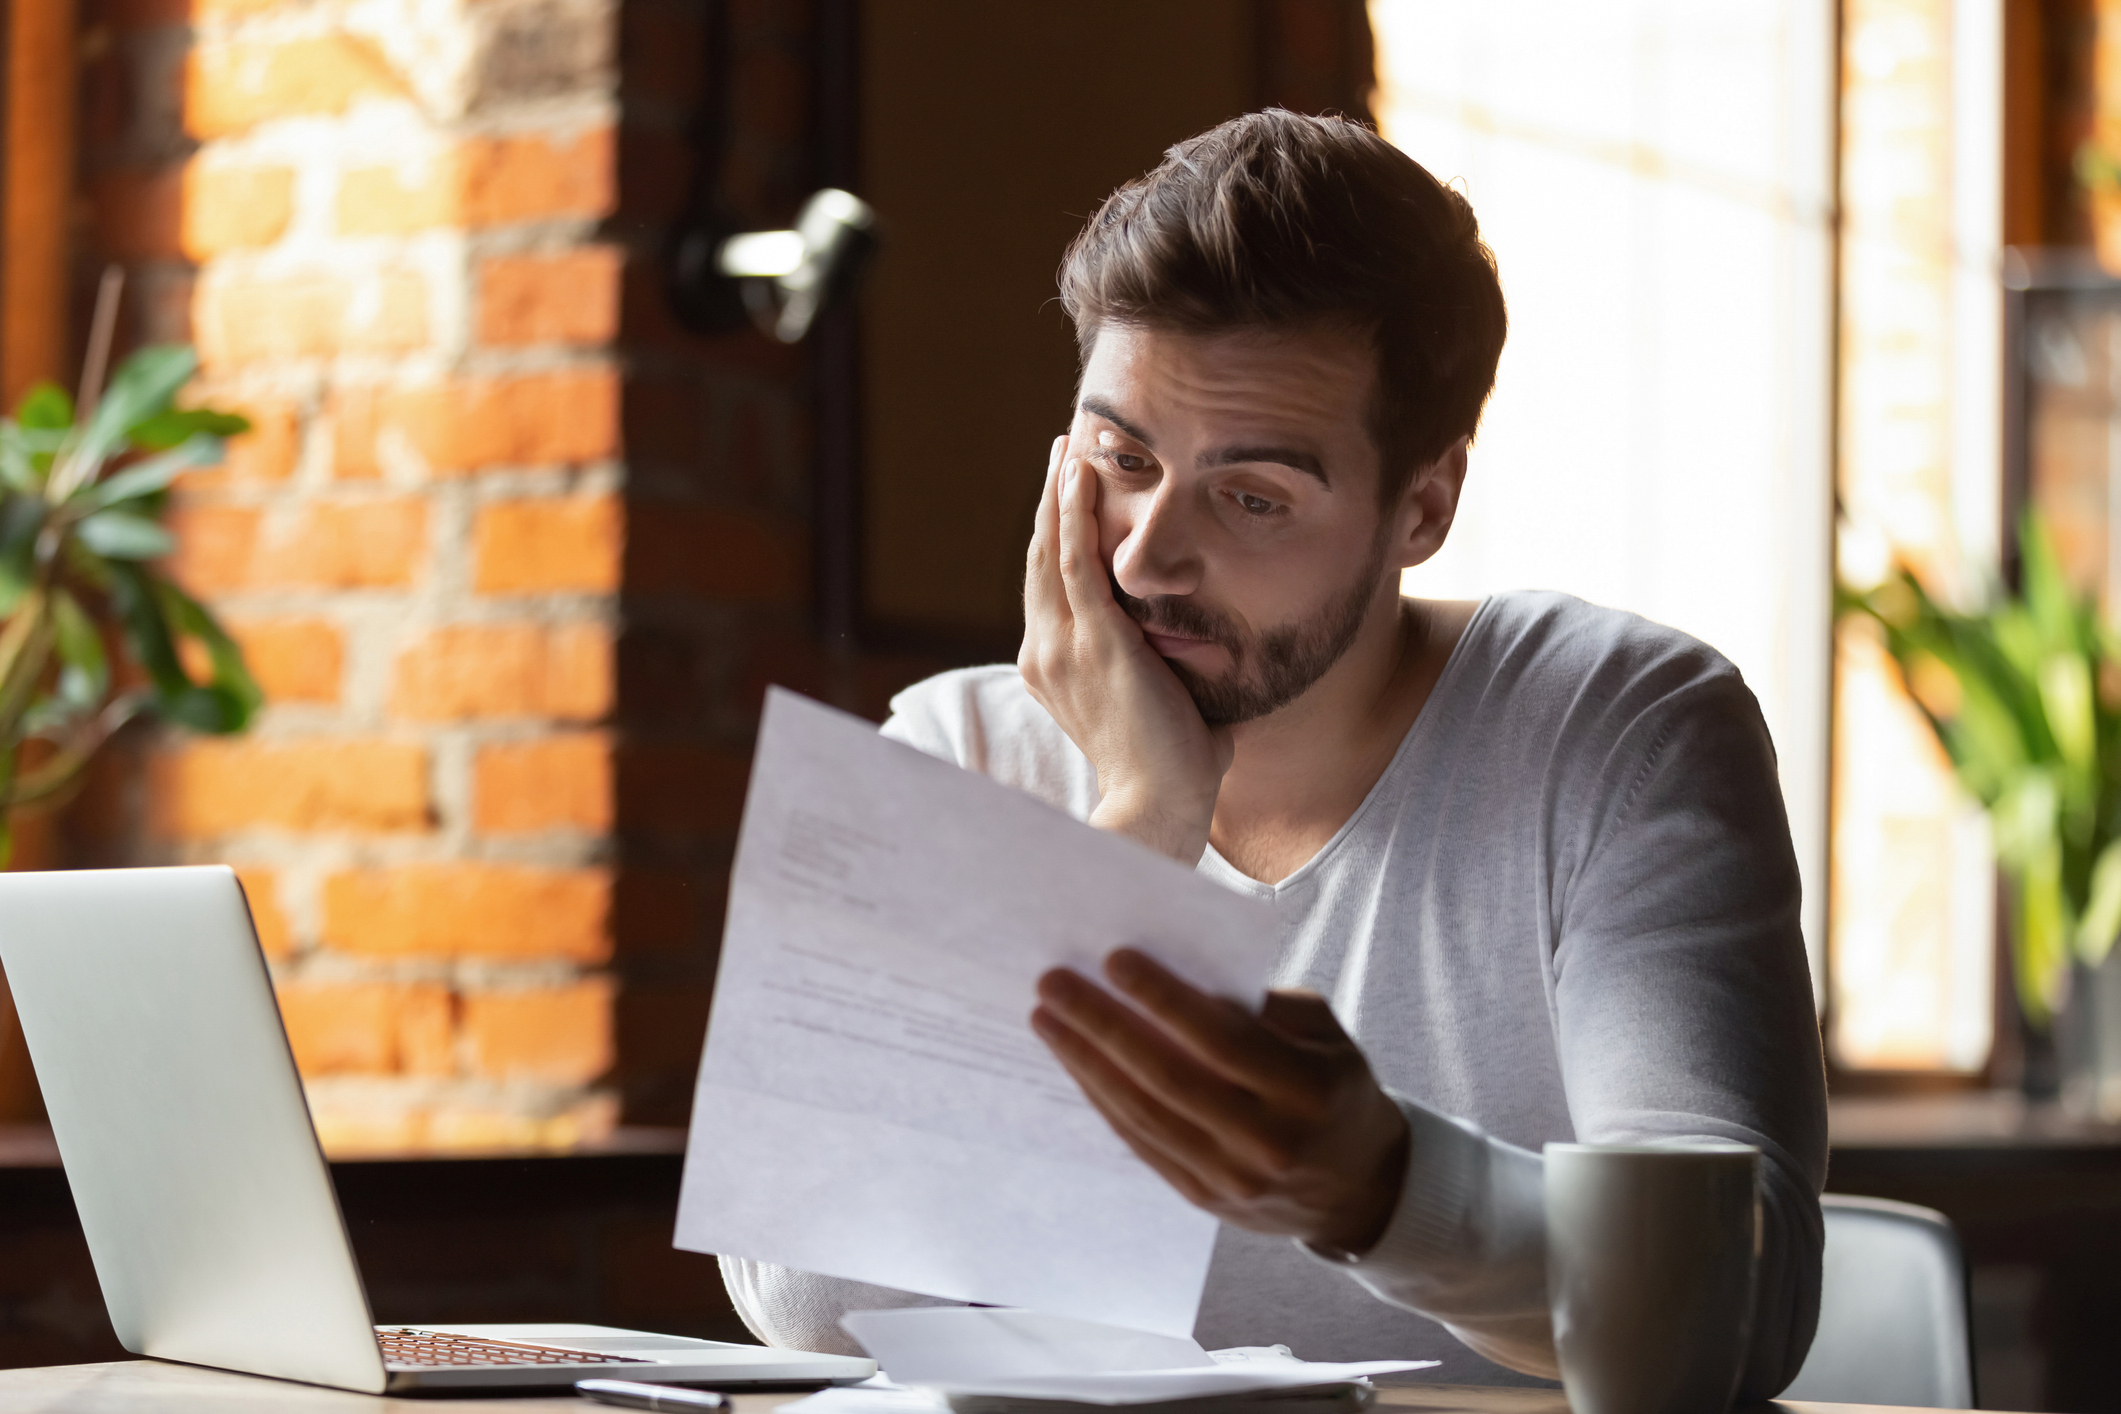 A man looking distressed while reading his credit card bill.